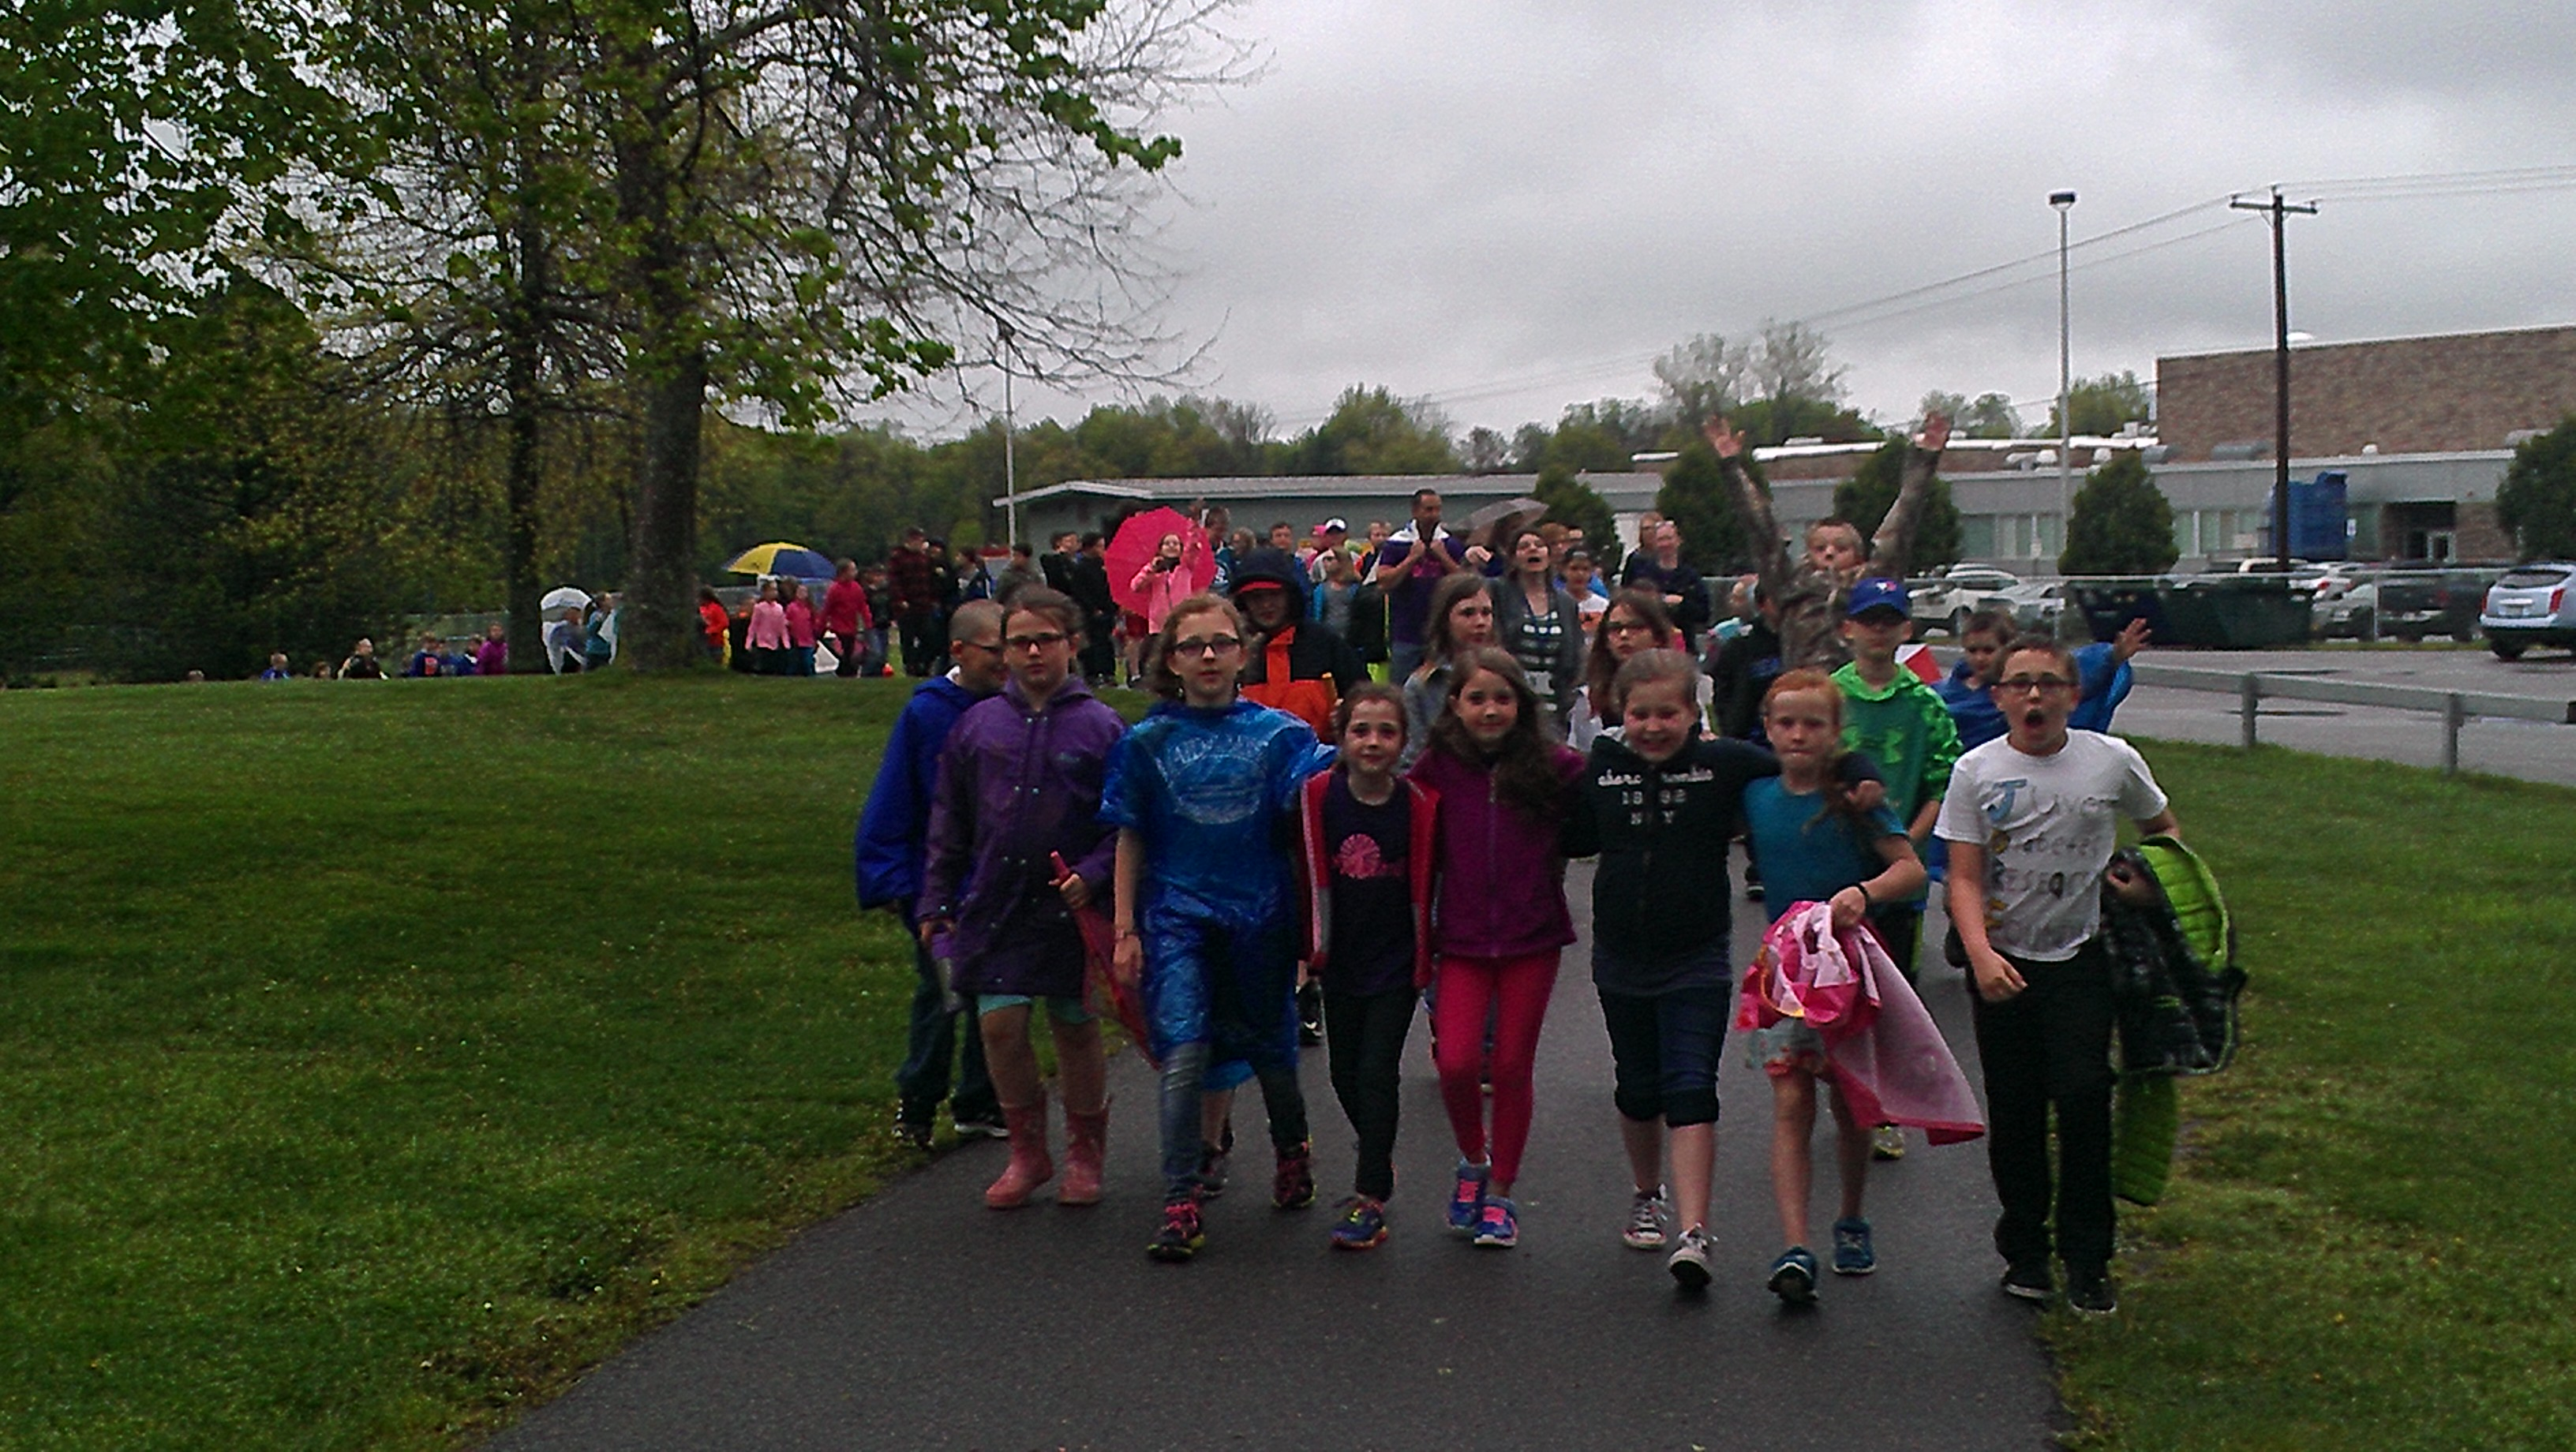 Middle School JDRF Kids Walk 2016